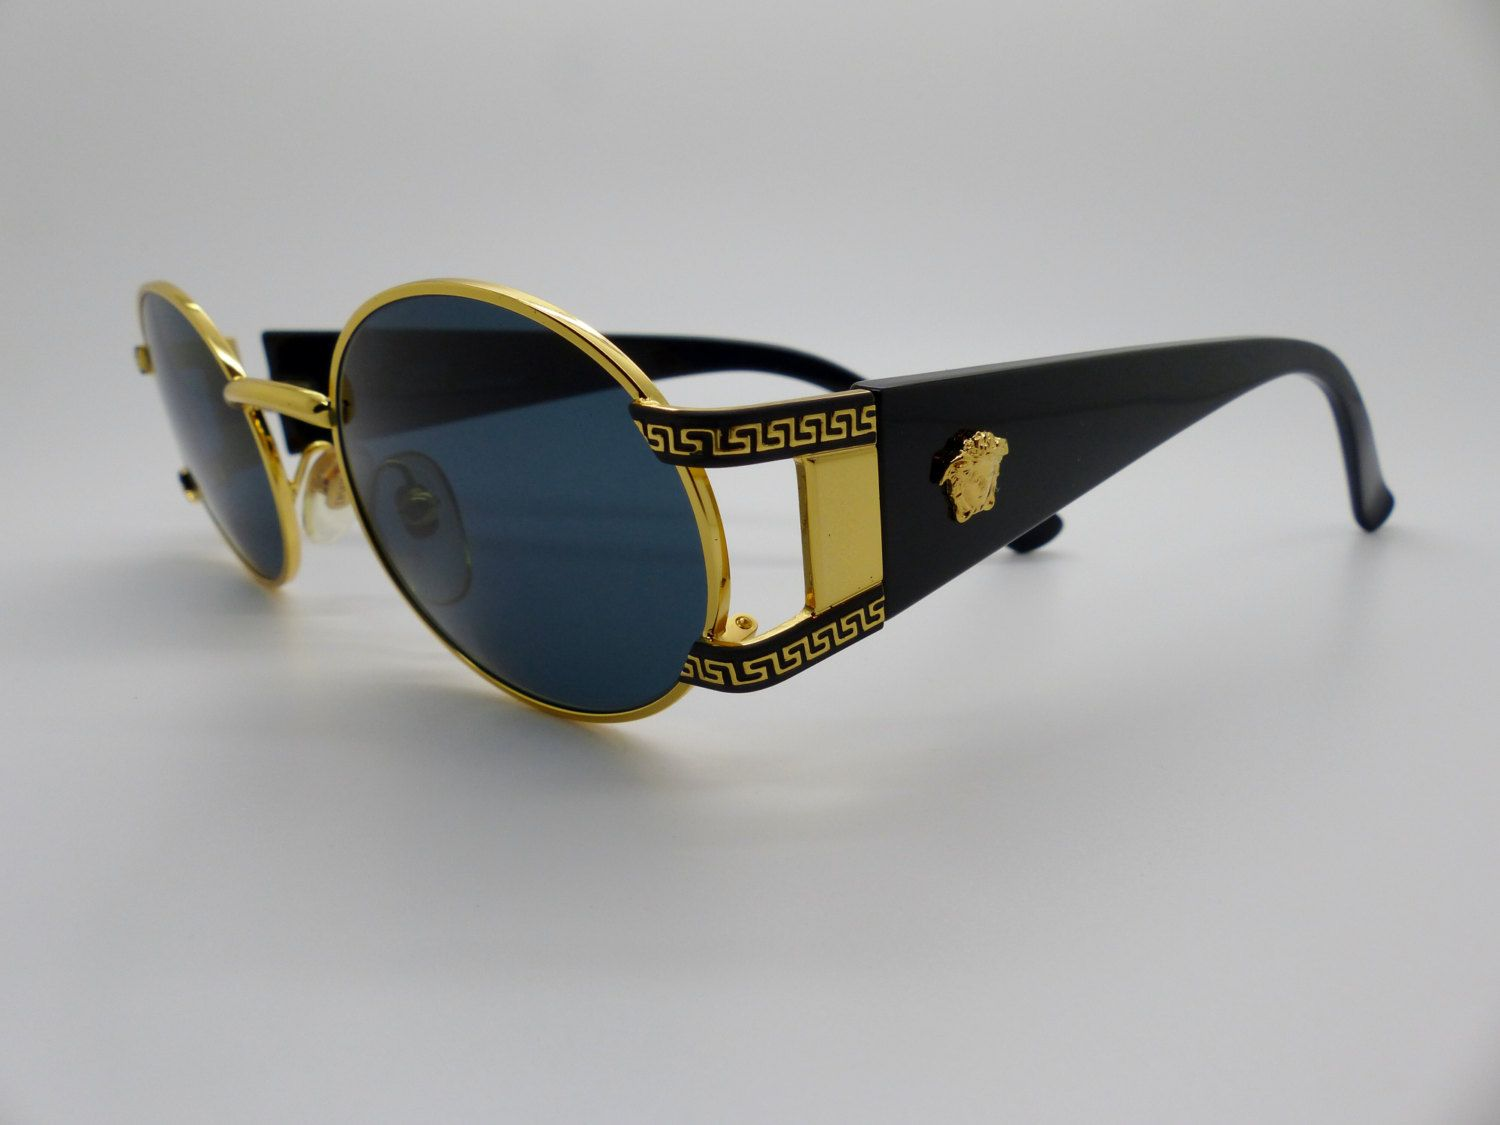 7c5bb5a27131 Rare Vintage Gianni Versace Medusa Sunglasses Mod S60 Col 49L New Old Stock  by VSOx on Etsy